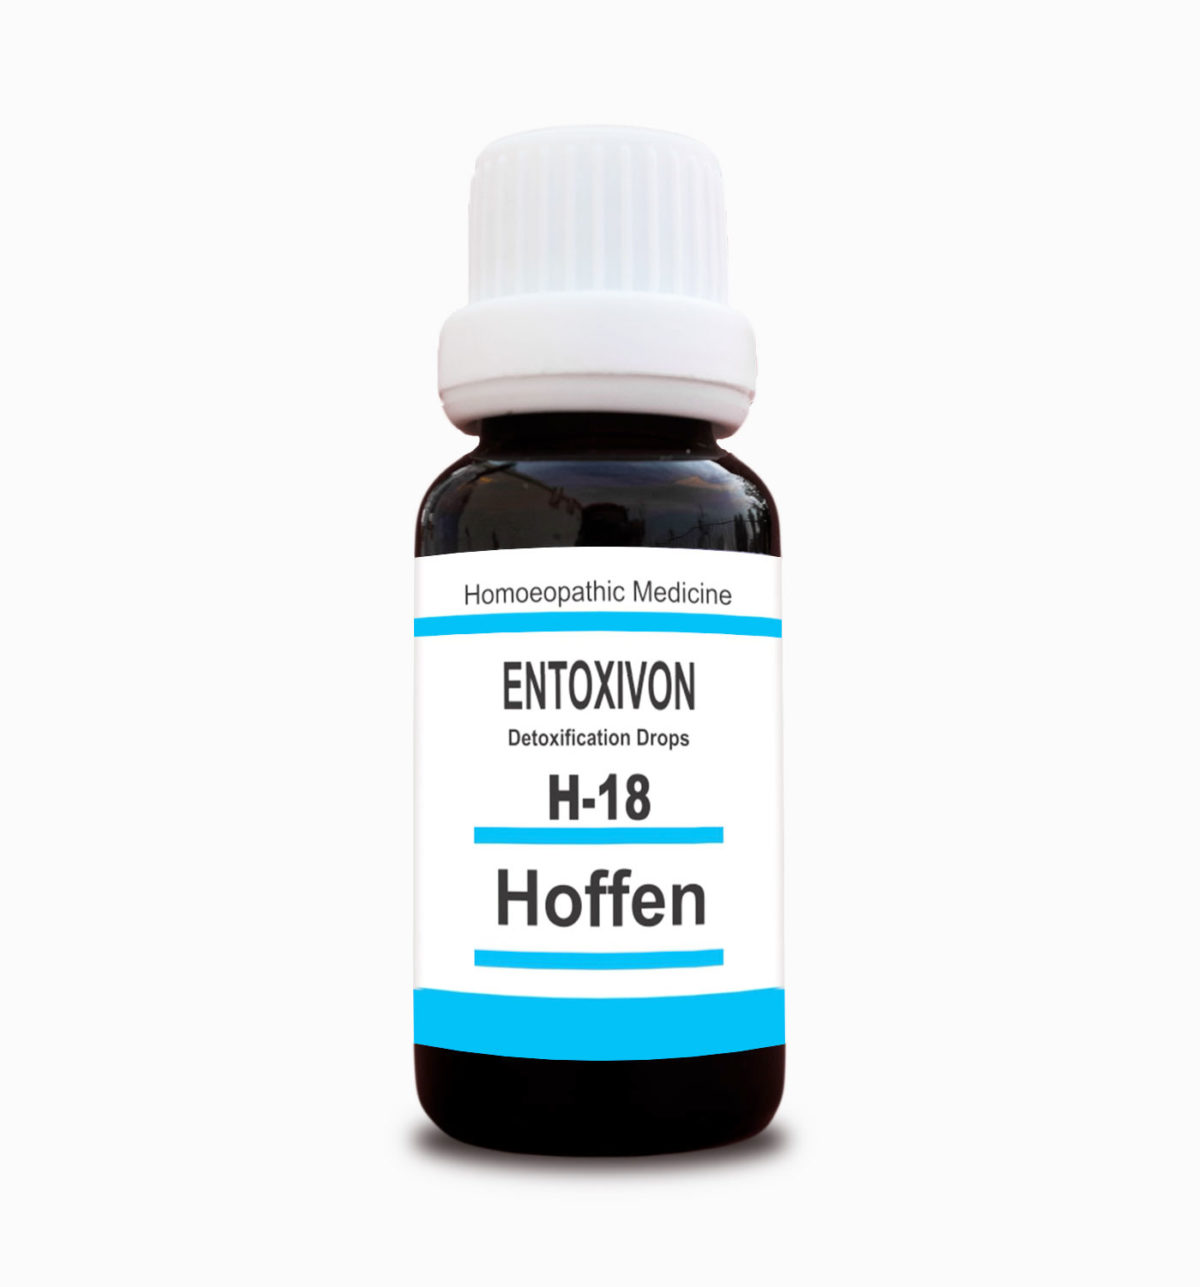 Homoeopathic preparation helpful for removal of external and internal toxins